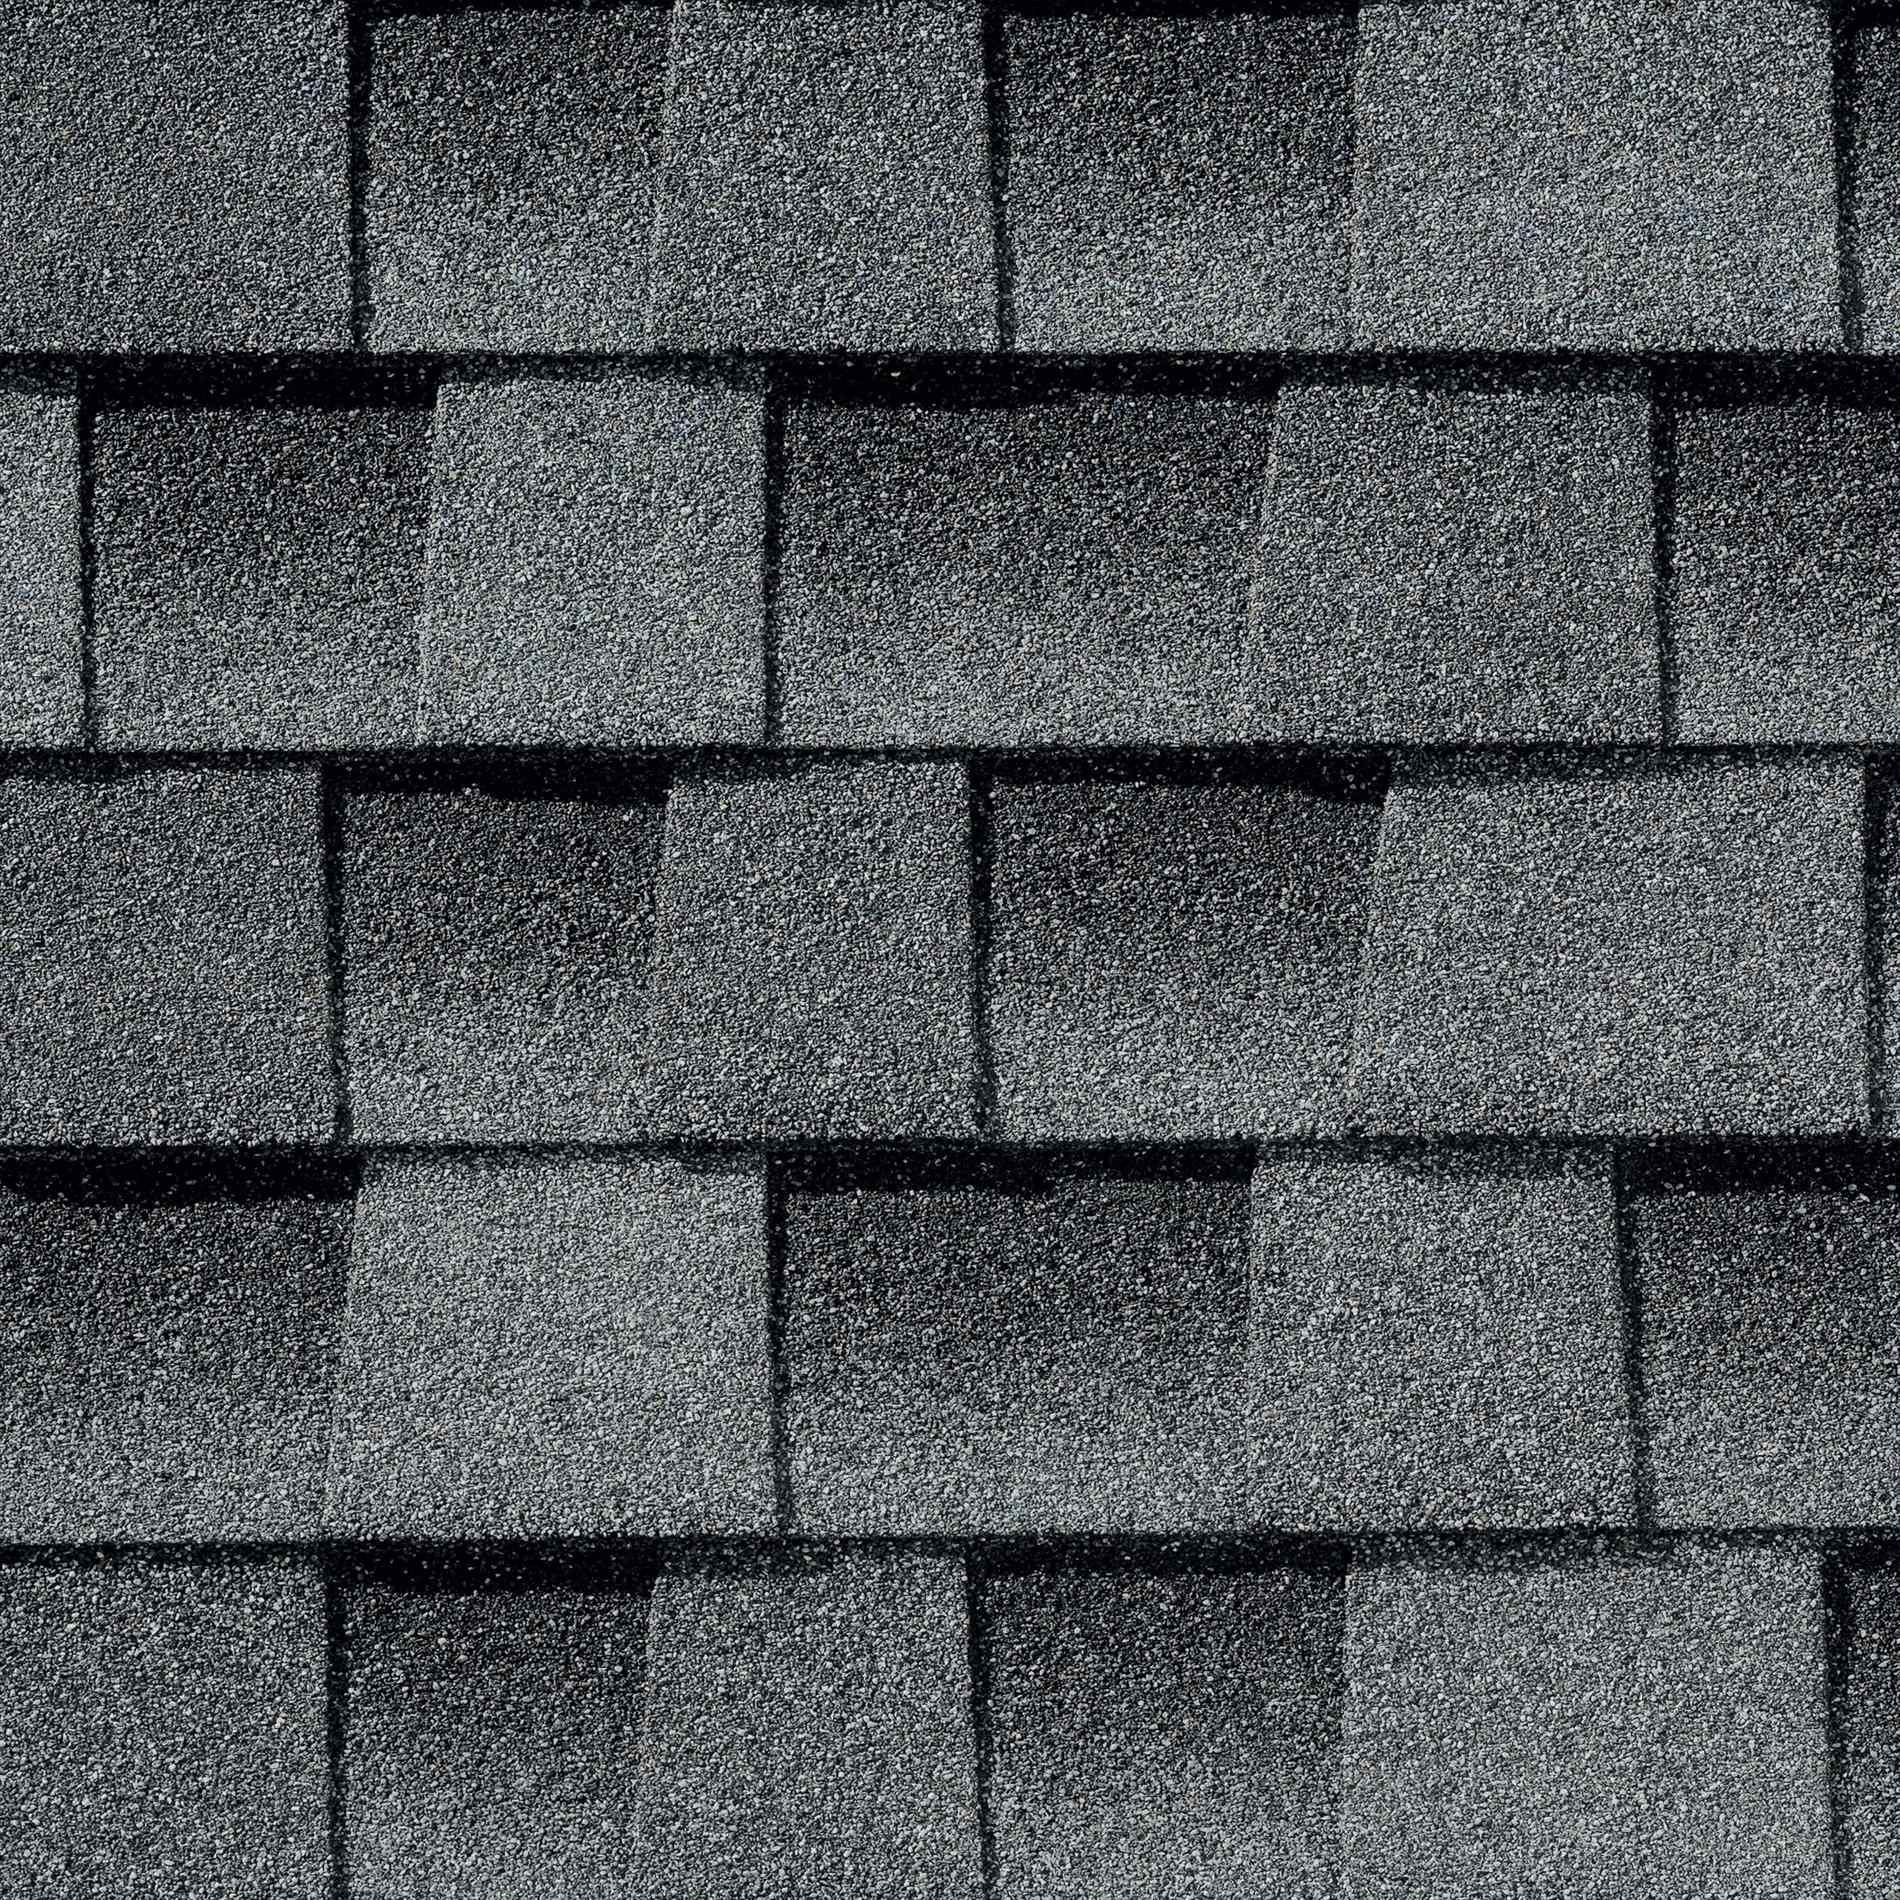 Roof Shingles Class Action Lawsuit Home Roof Ideas Architectural Shingles Roof Architectural Shingles Roof Architecture